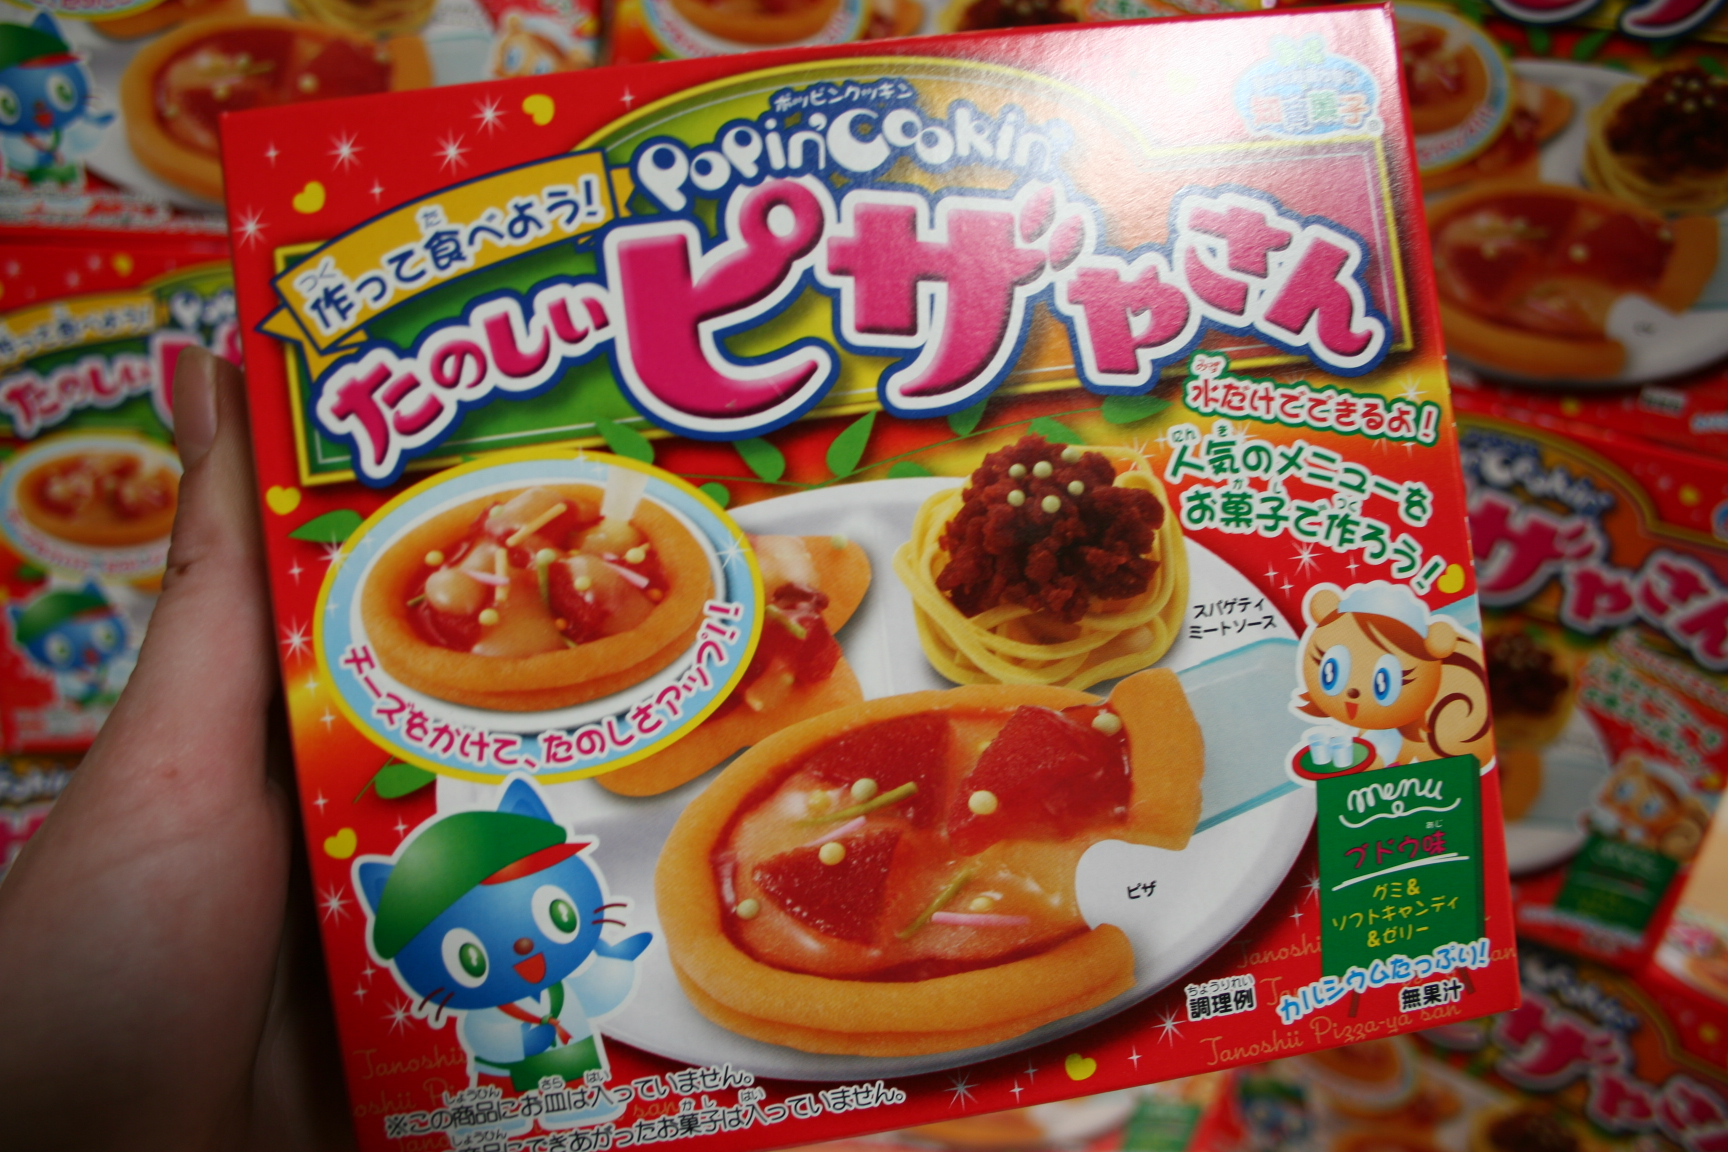 Popin cookin amazon - Click The Image To Open In Full Size